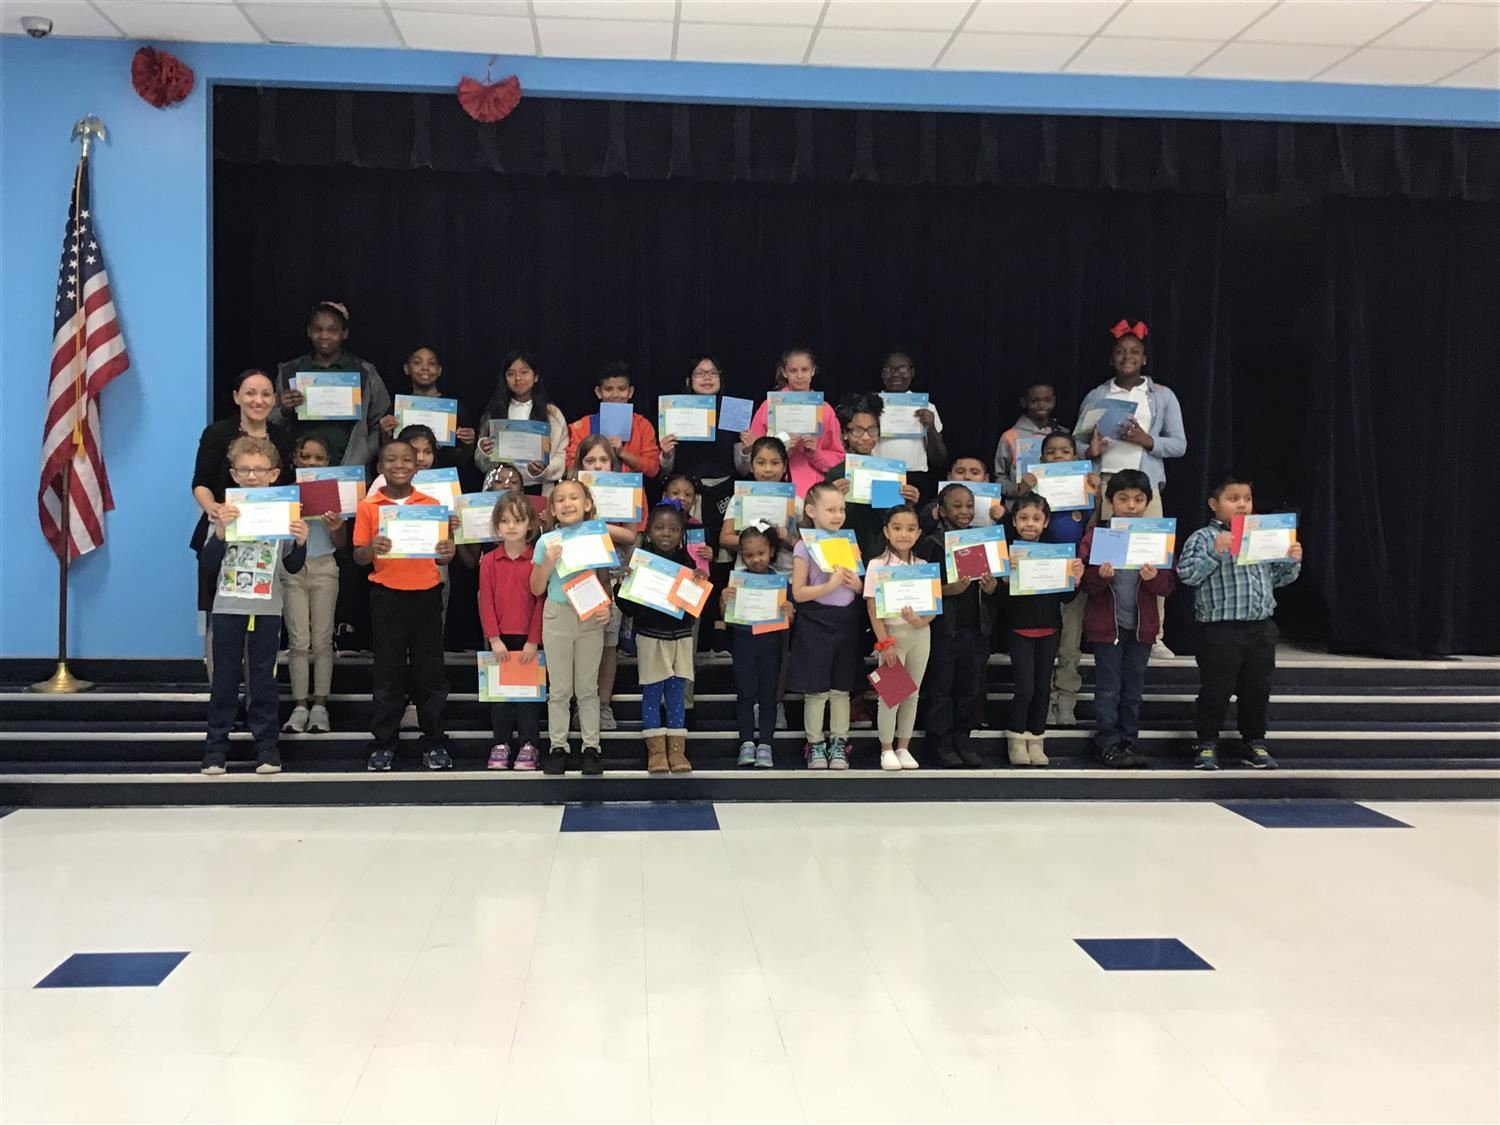 Congratulations to our January Terrific Kids!